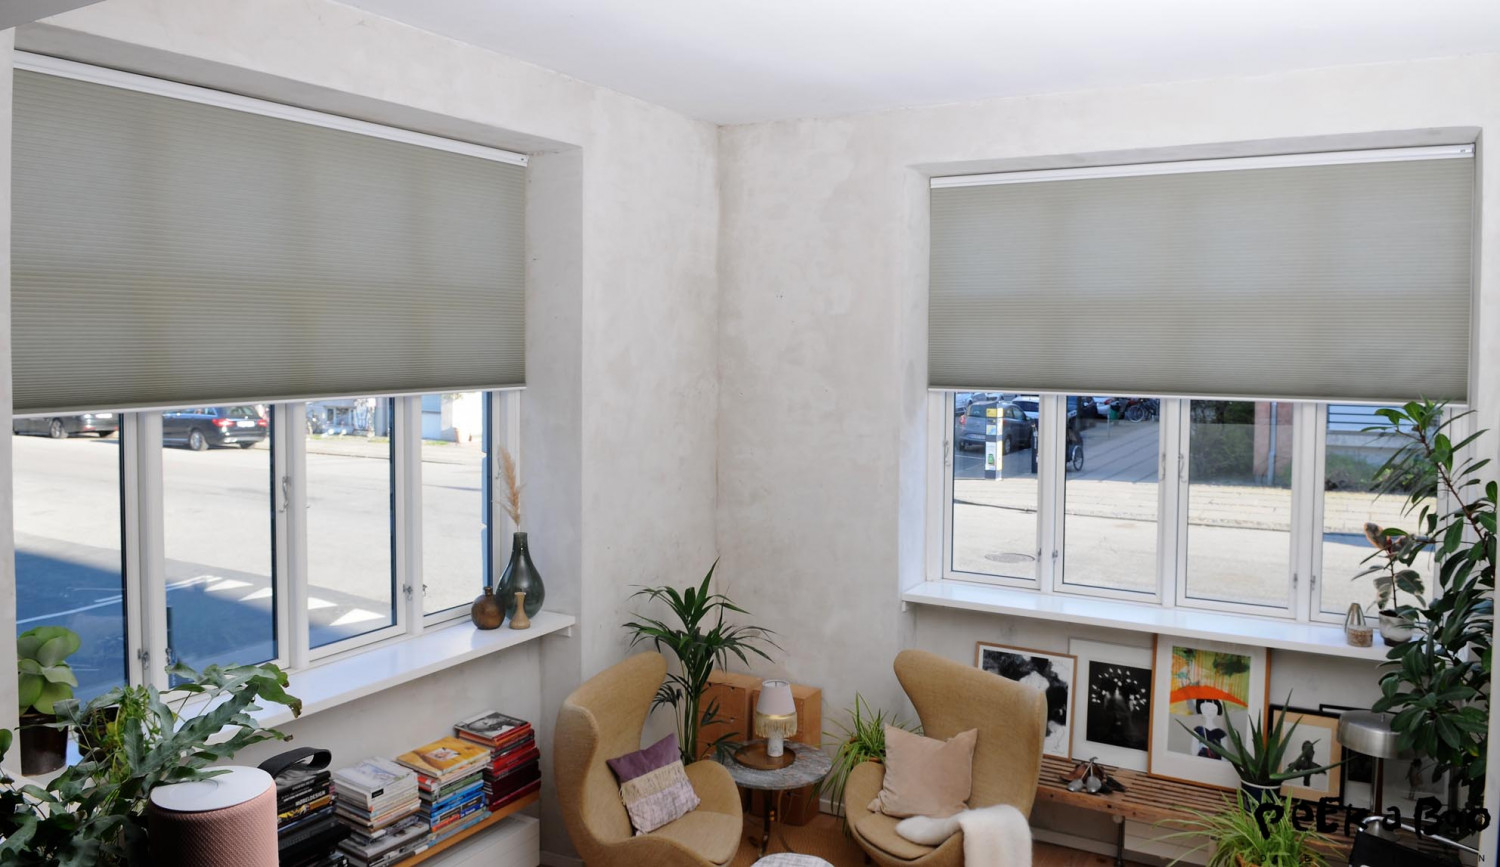 Automized and costumemade blinds from Luxaflex.